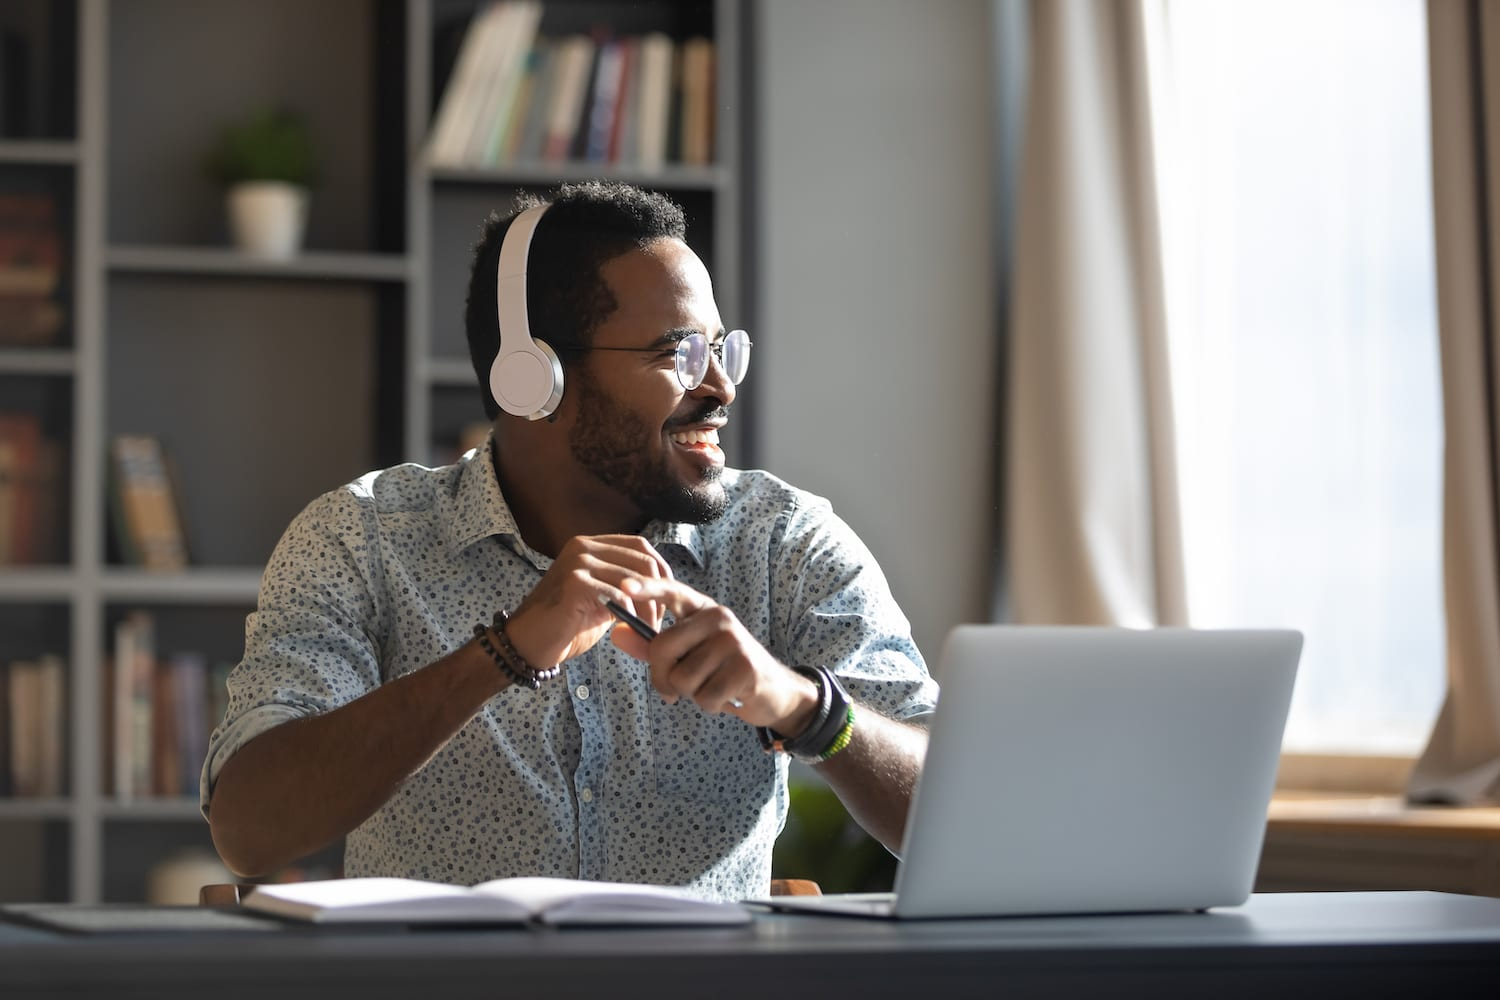 Man working from home with laptop and headphones